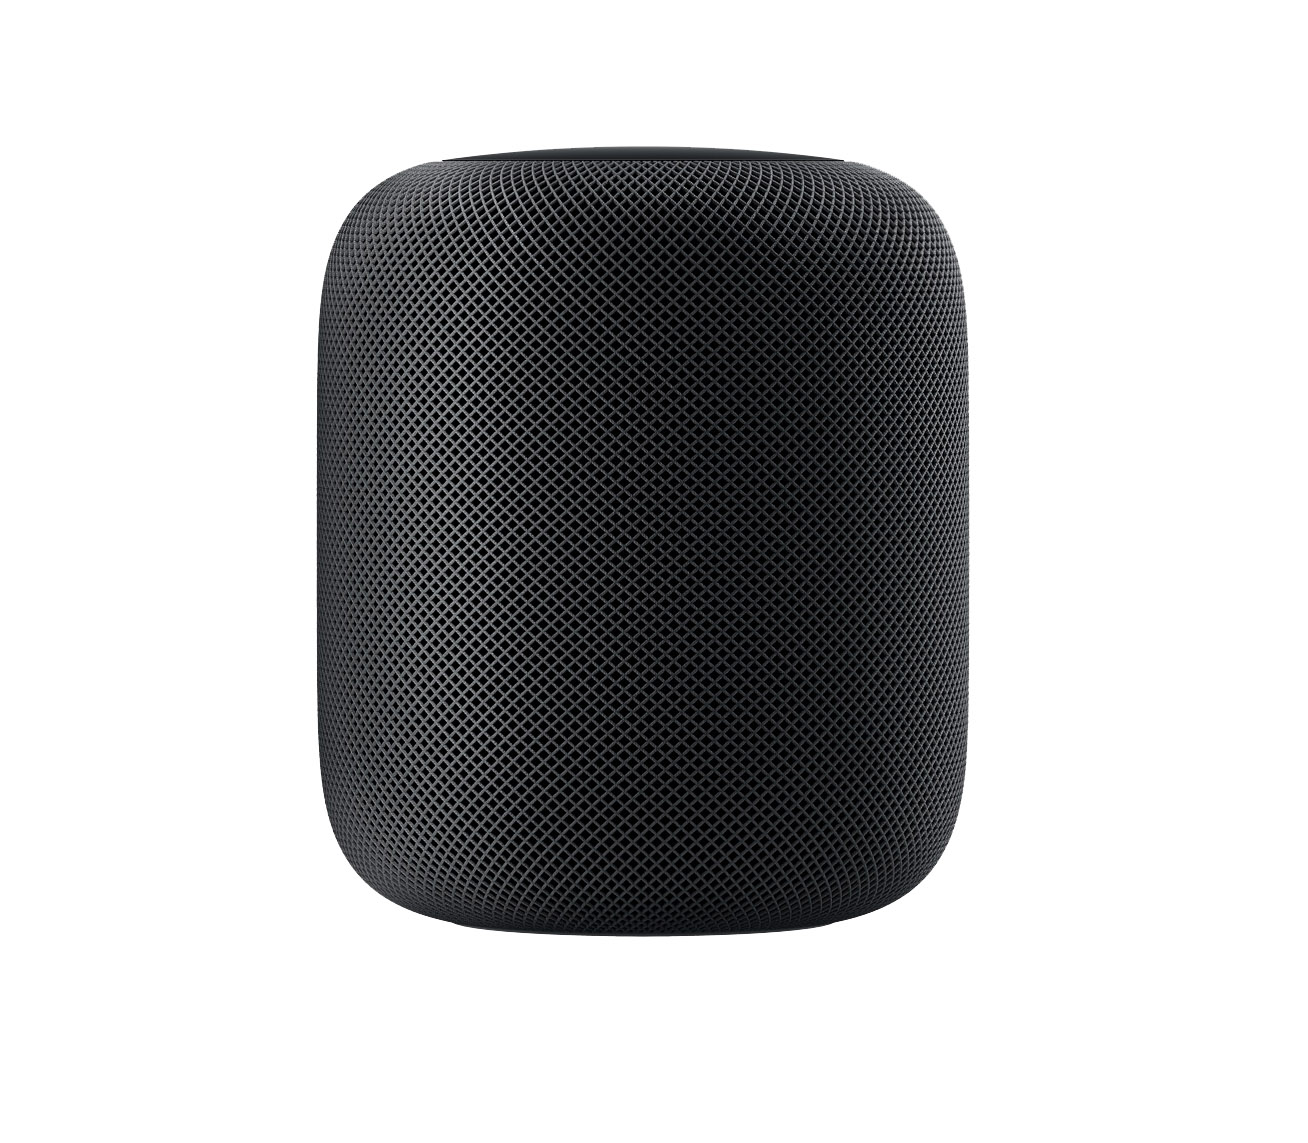 Apple HomePod - Серый космос (Space Gray)